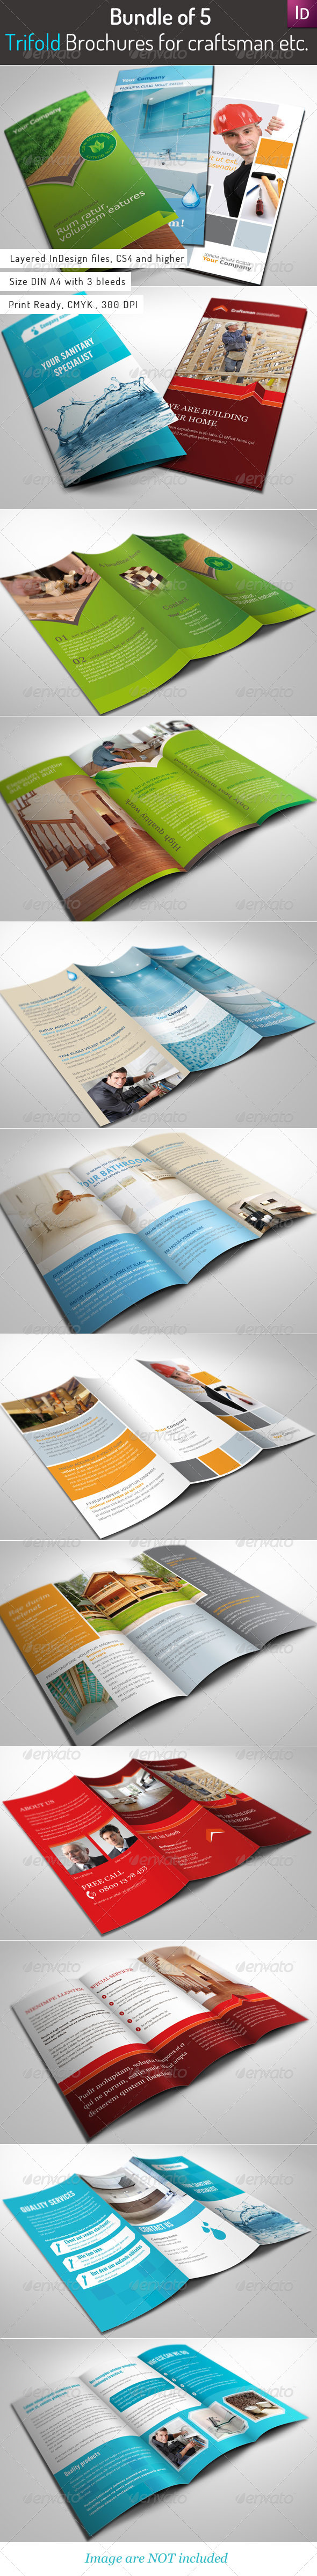 GraphicRiver Bundle of 5 Trifold Brochures 3381150